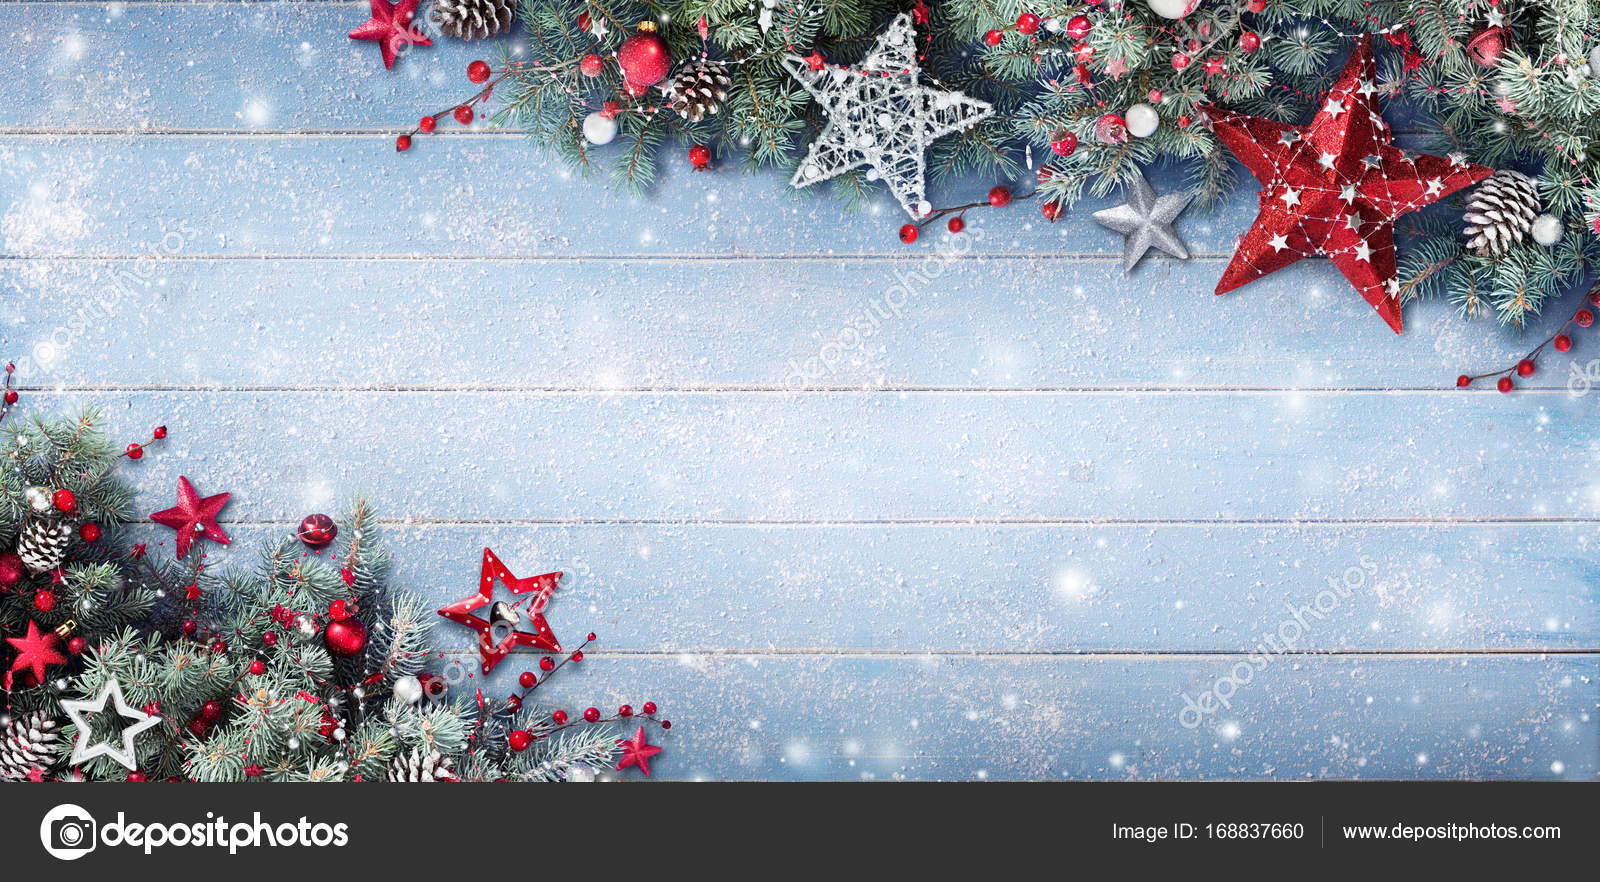 3d Xmas Wallpaper Free Christmas Background Fir Branches And Baubles On Snowy